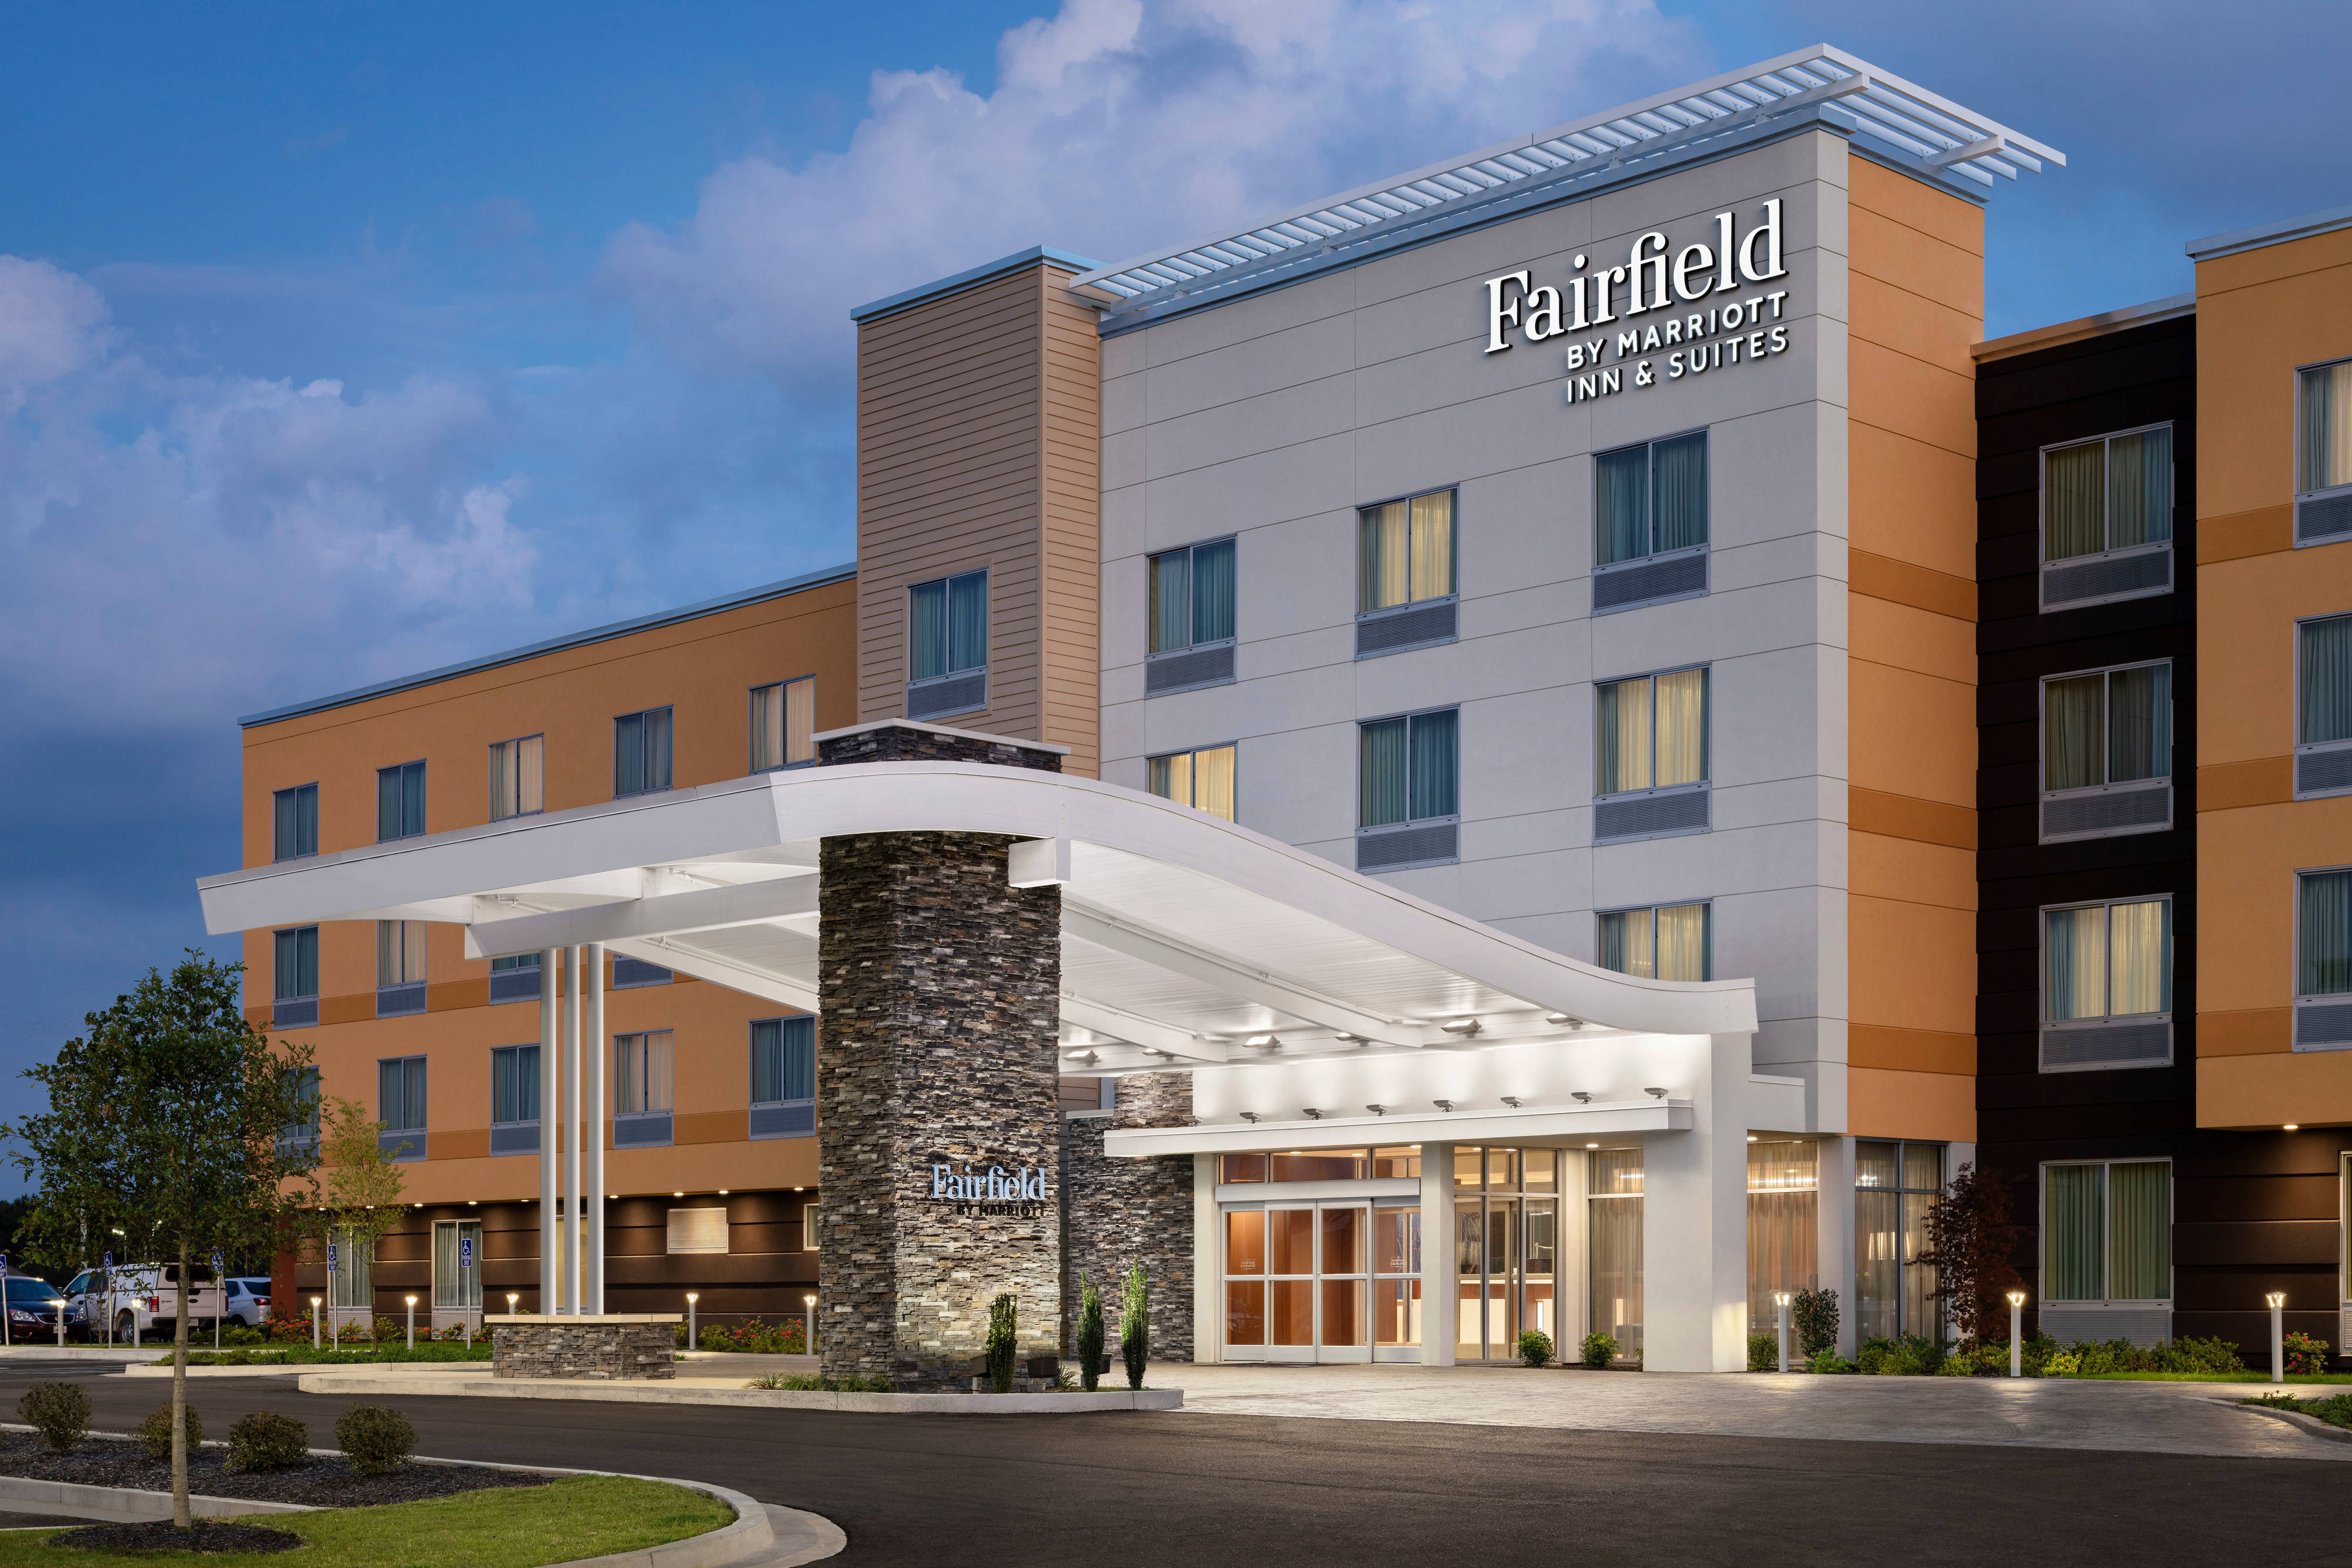 FAIRFIELD INN AND SUITES MORRISTOWN